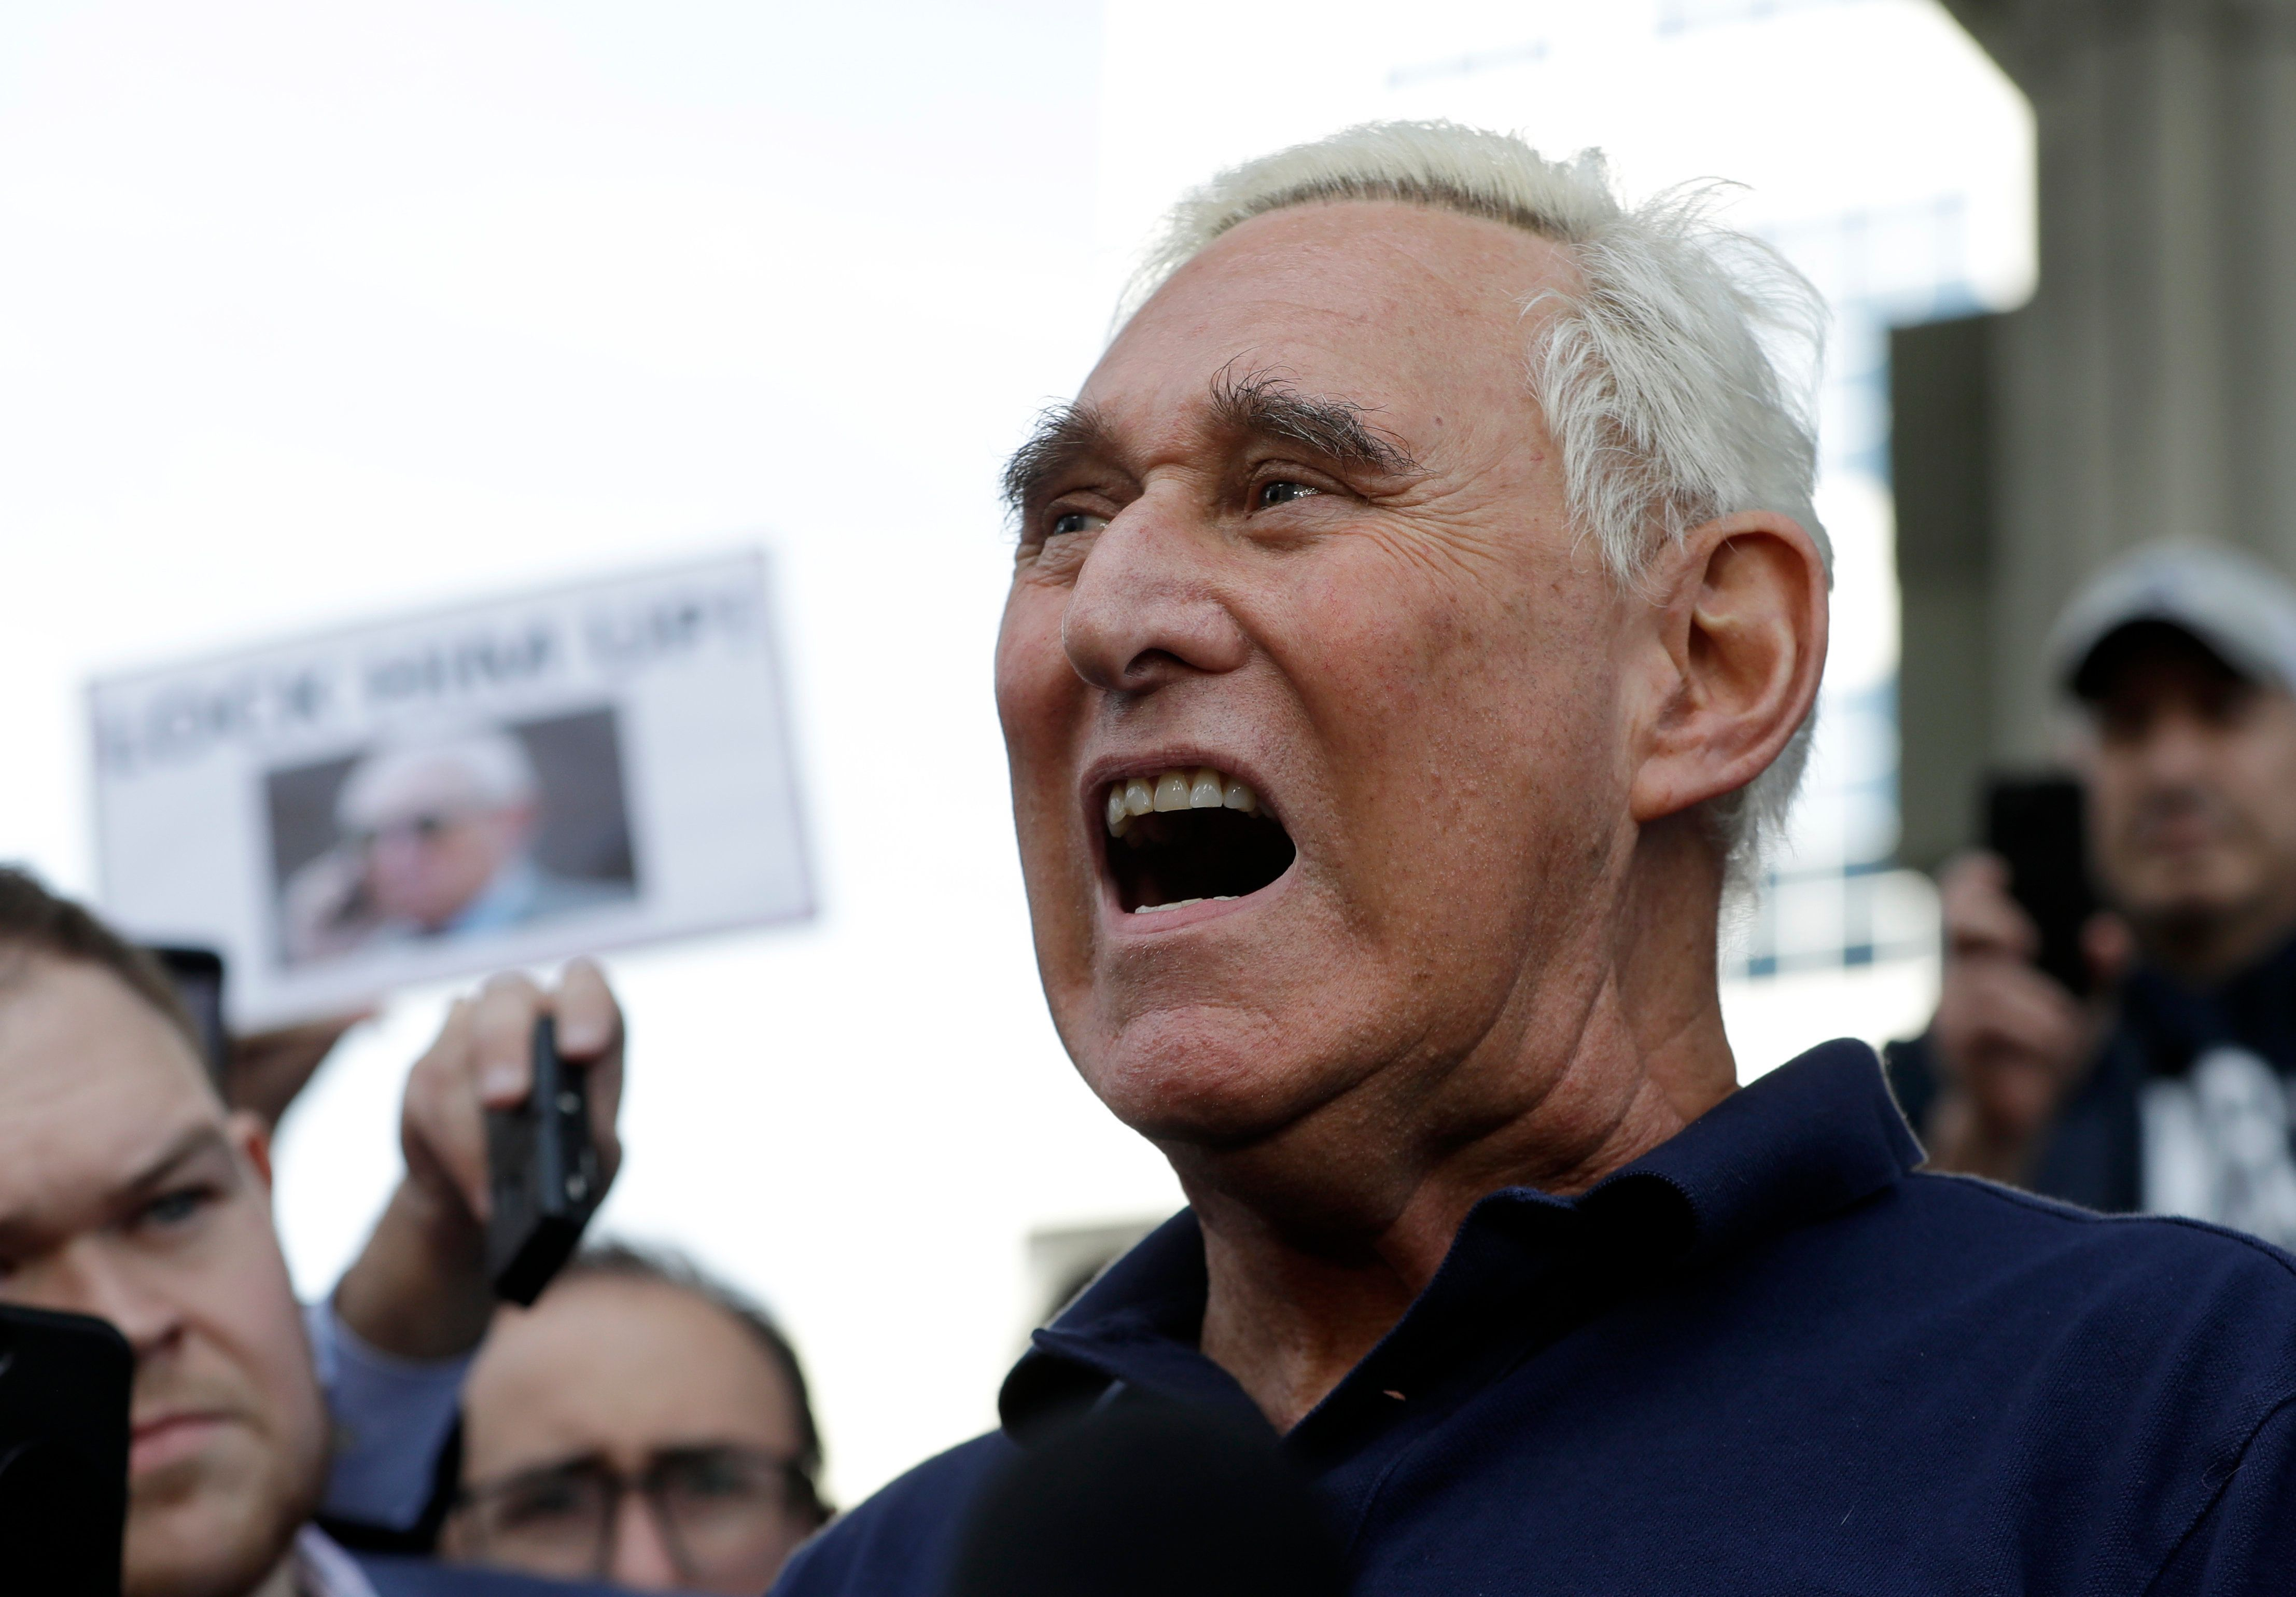 Roger Stone, a confidant of President Donald Trump, speaks outside of the federal courthouse following a hearing, Friday, Jan. 25, 2019, in Fort Lauderdale, Fla. Stone was arrested Friday in the special counsel's Russia investigation and was charged with lying to Congress and obstructing the probe. (AP Photo/Lynne Sladky)